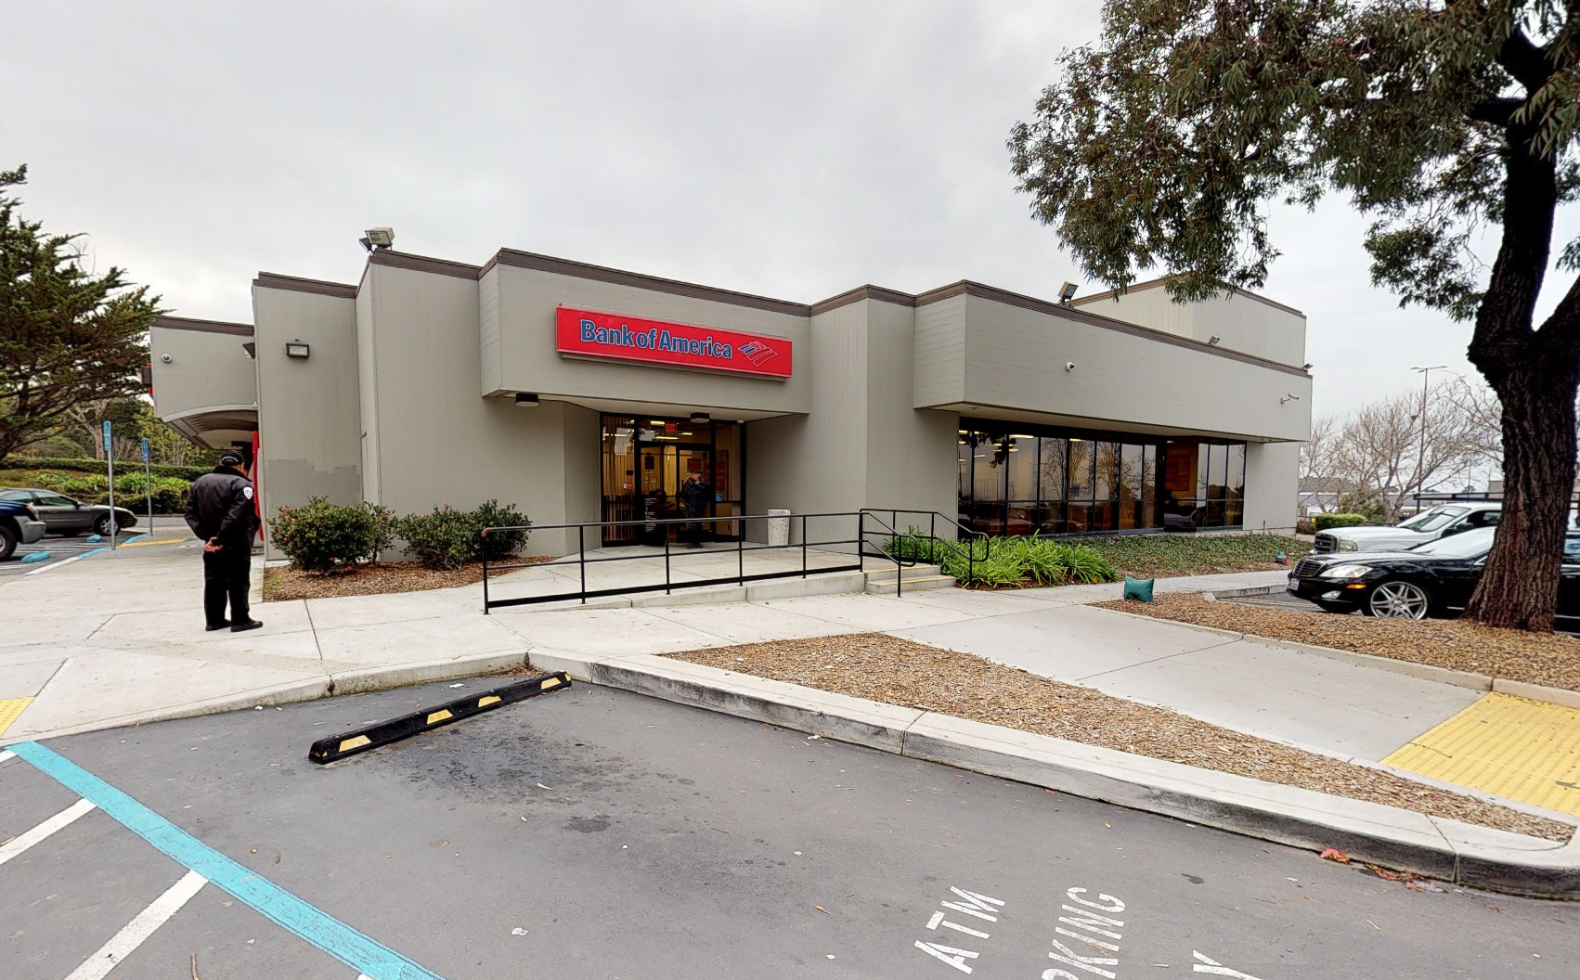 Bank of America financial center with drive-thru ATM | 3100 Hilltop Mall Rd, Richmond, CA 94806